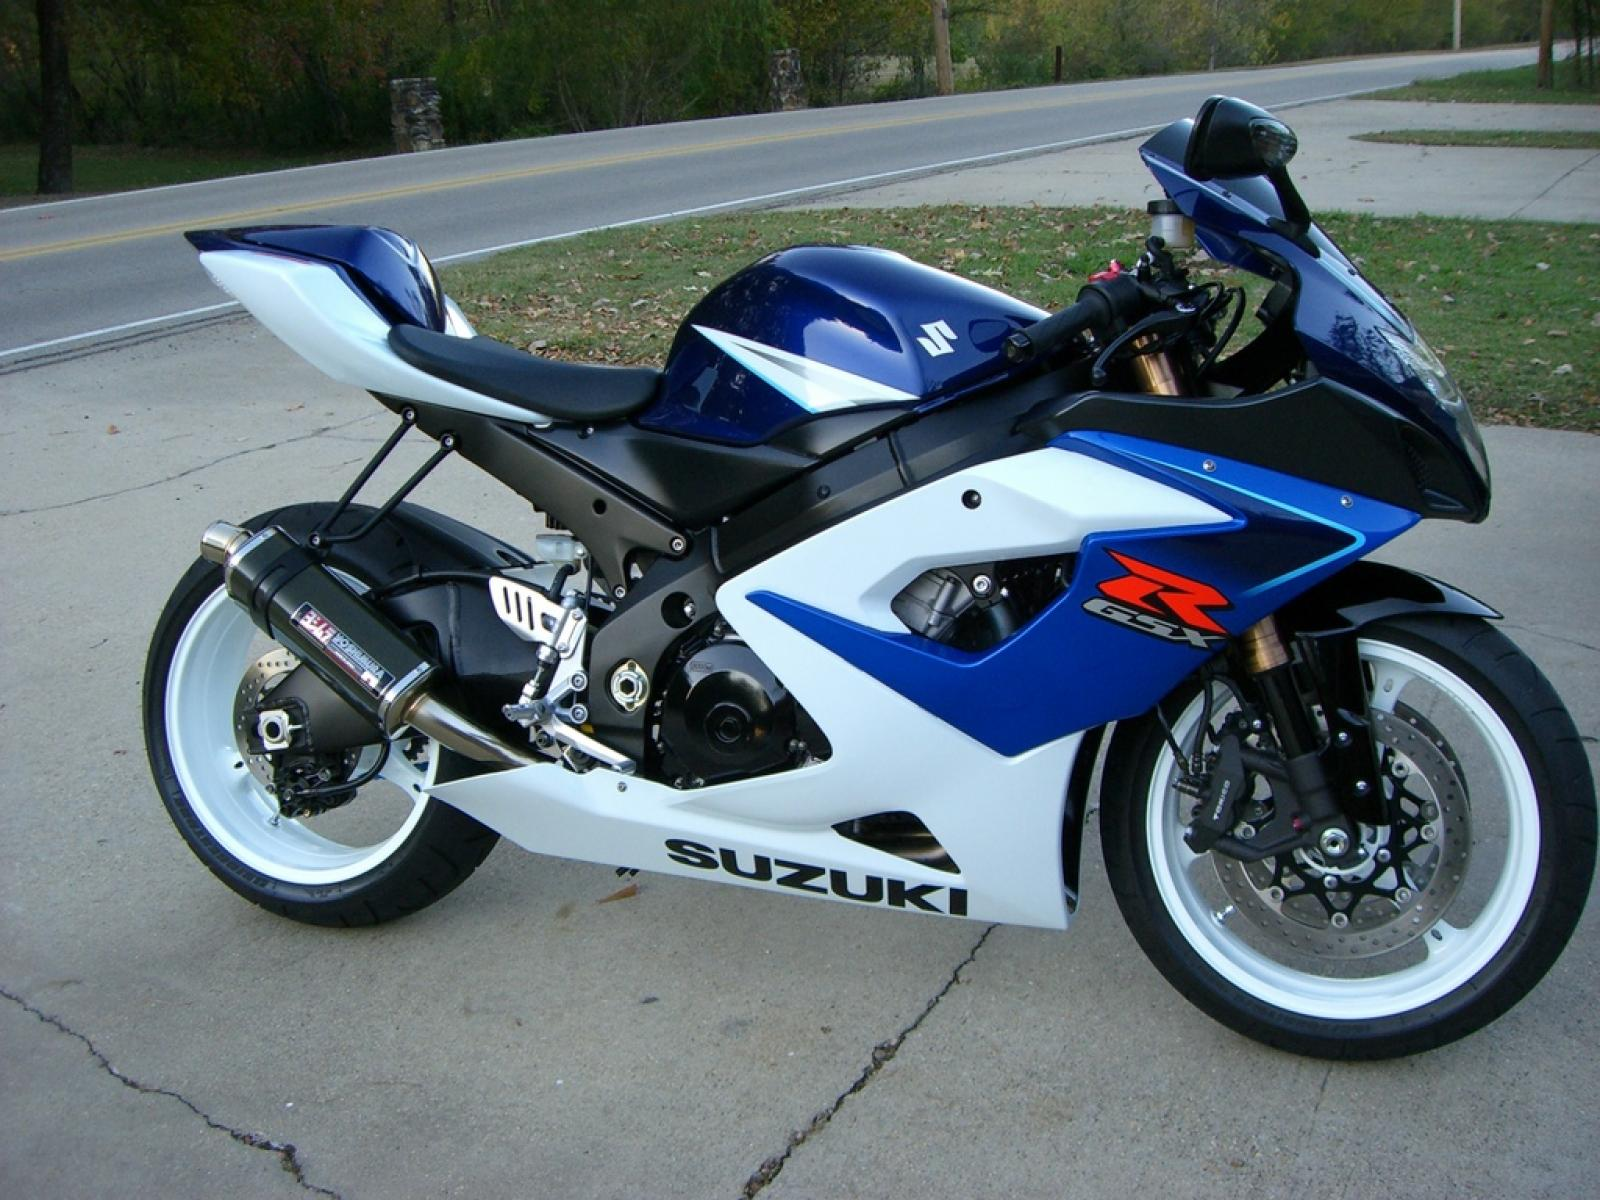 2006 suzuki gsx r 1000 moto zombdrive com. Black Bedroom Furniture Sets. Home Design Ideas